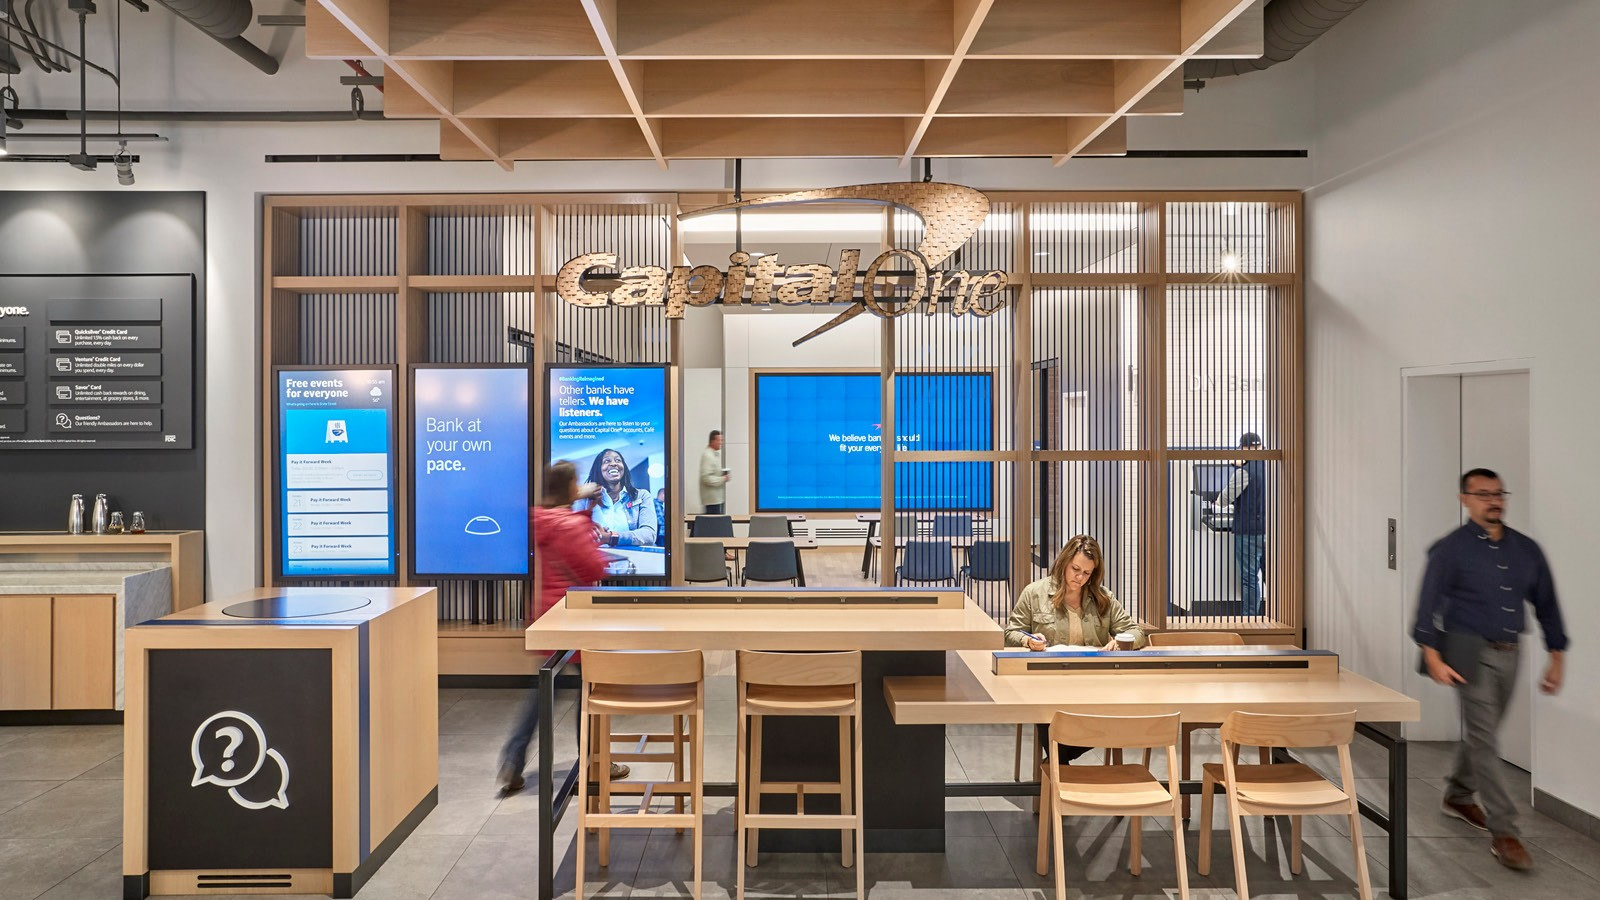 Capital One Café at 100 State Street